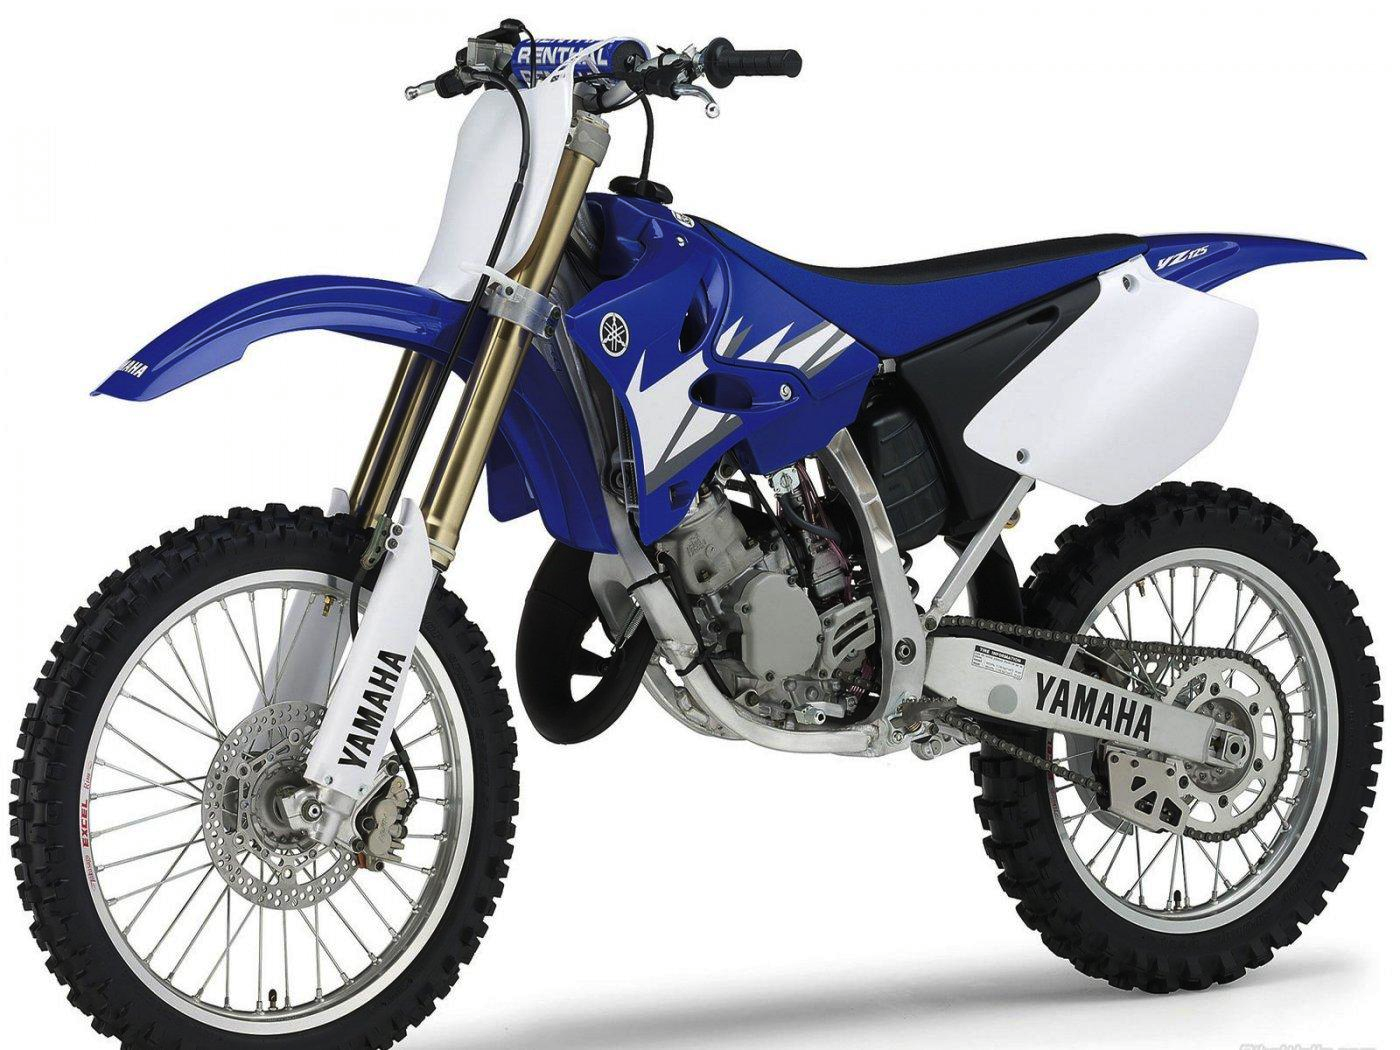 125 Yamaha Ttr What I Have For Now Will Be Upgrading Soon